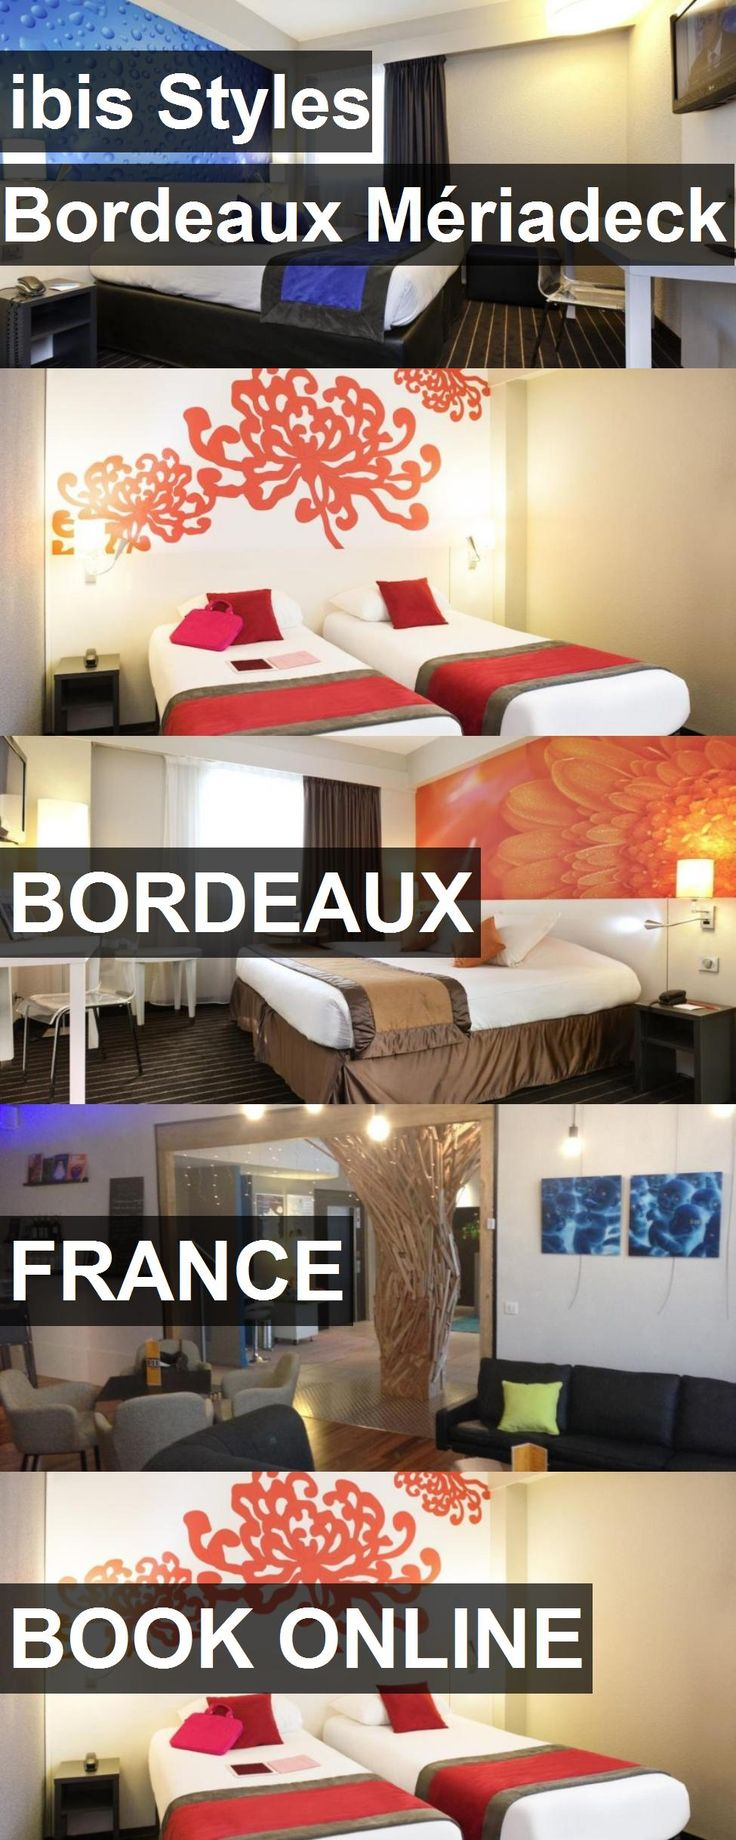 Hotel ibis Styles Bordeaux Mériadeck in Bordeaux, France. For more information, photos, reviews and best prices please follow the link. #France #Bordeaux #travel #vacation #hotel